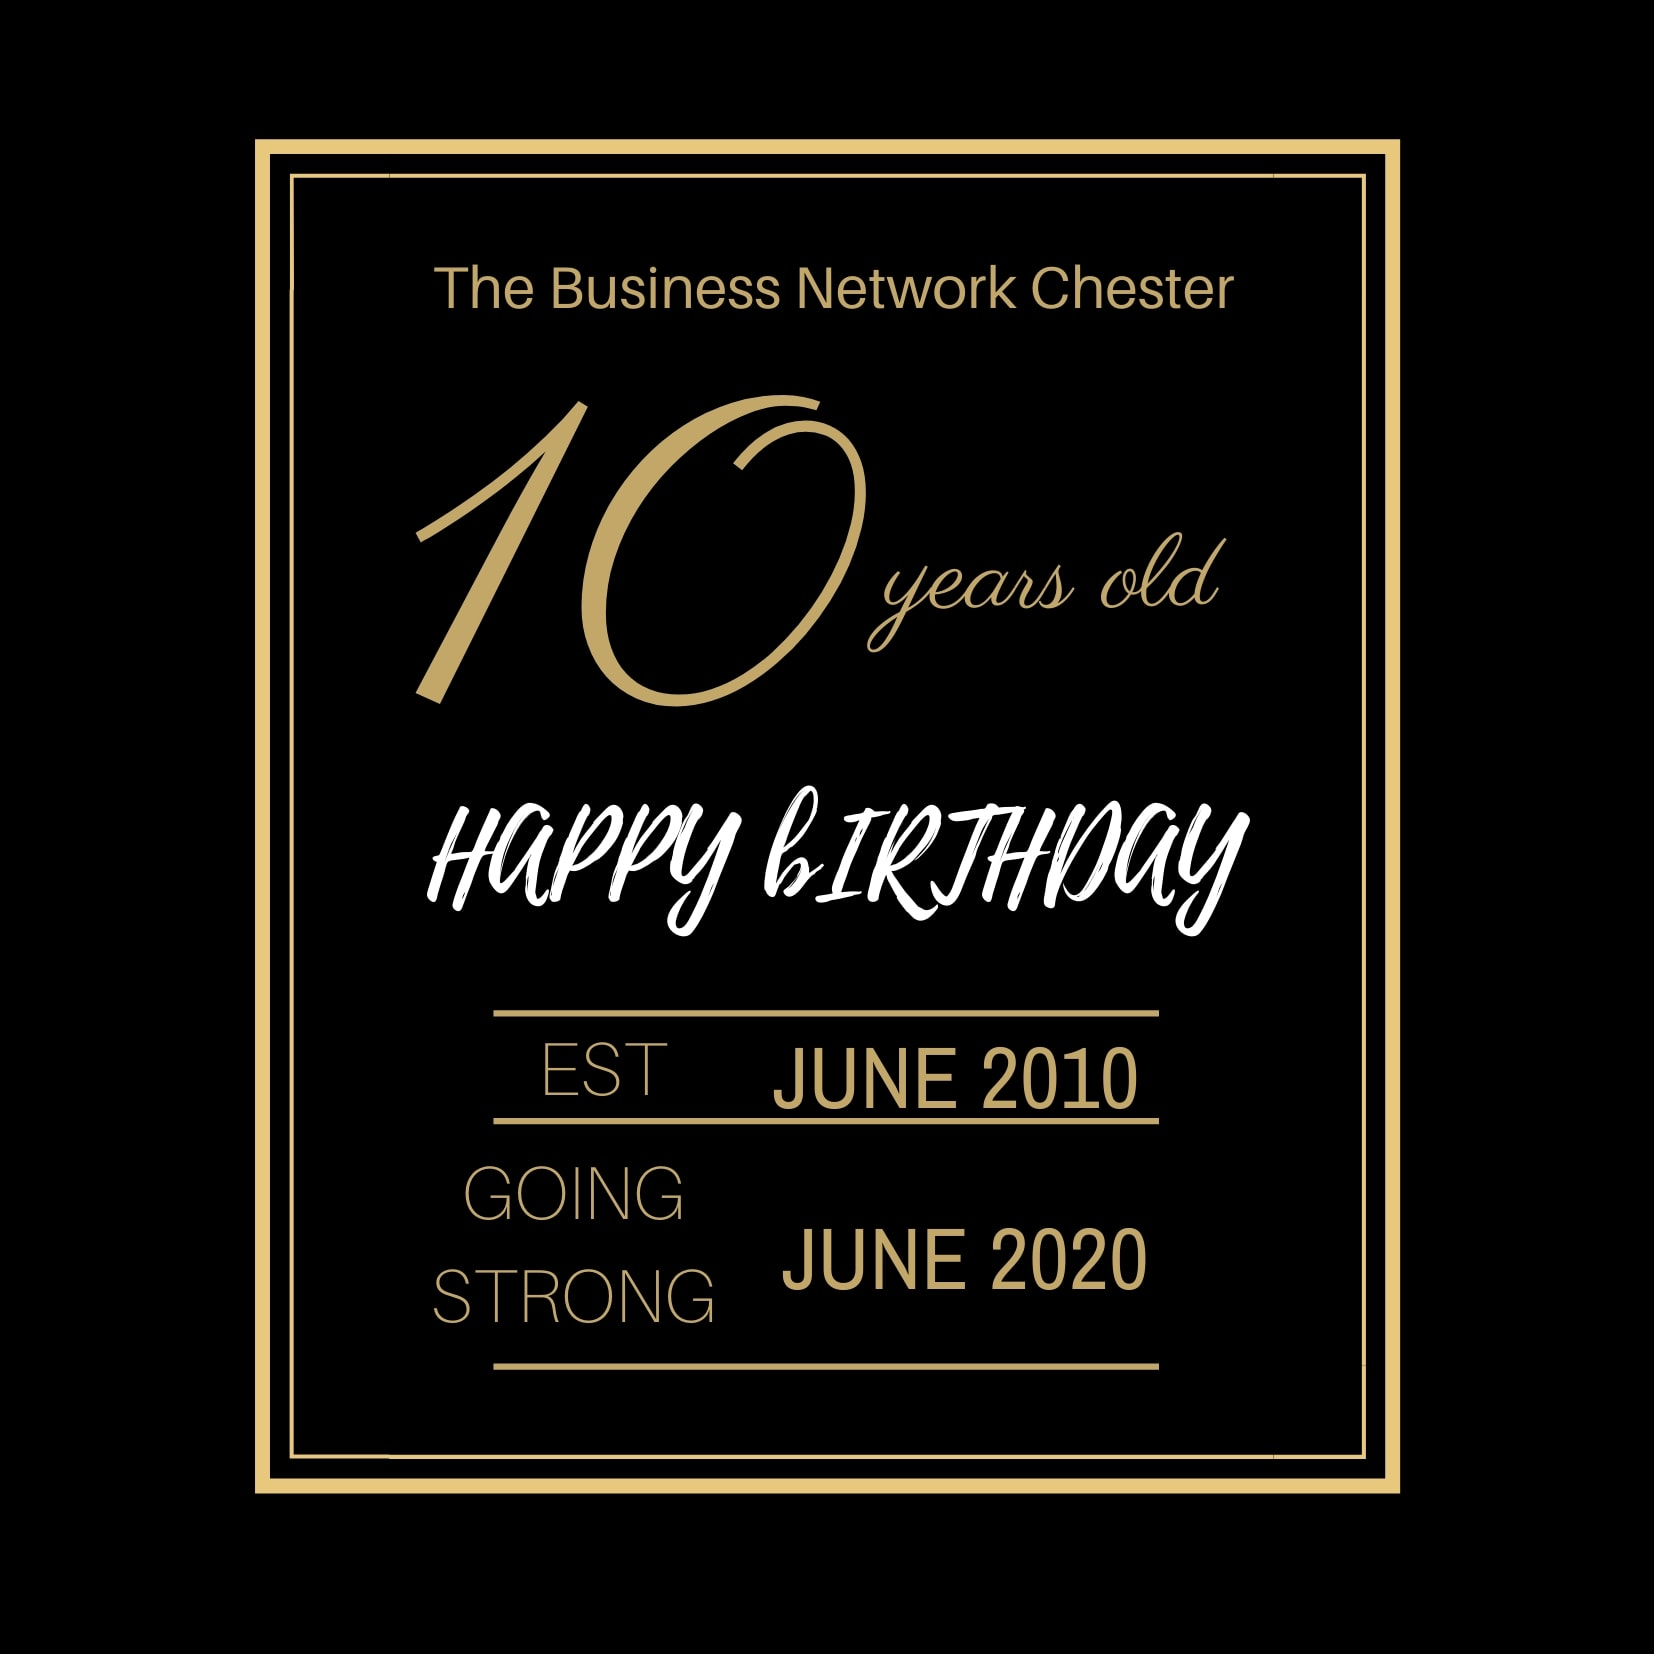 Online Business Networking event The Business Network Chester turns 10 years old